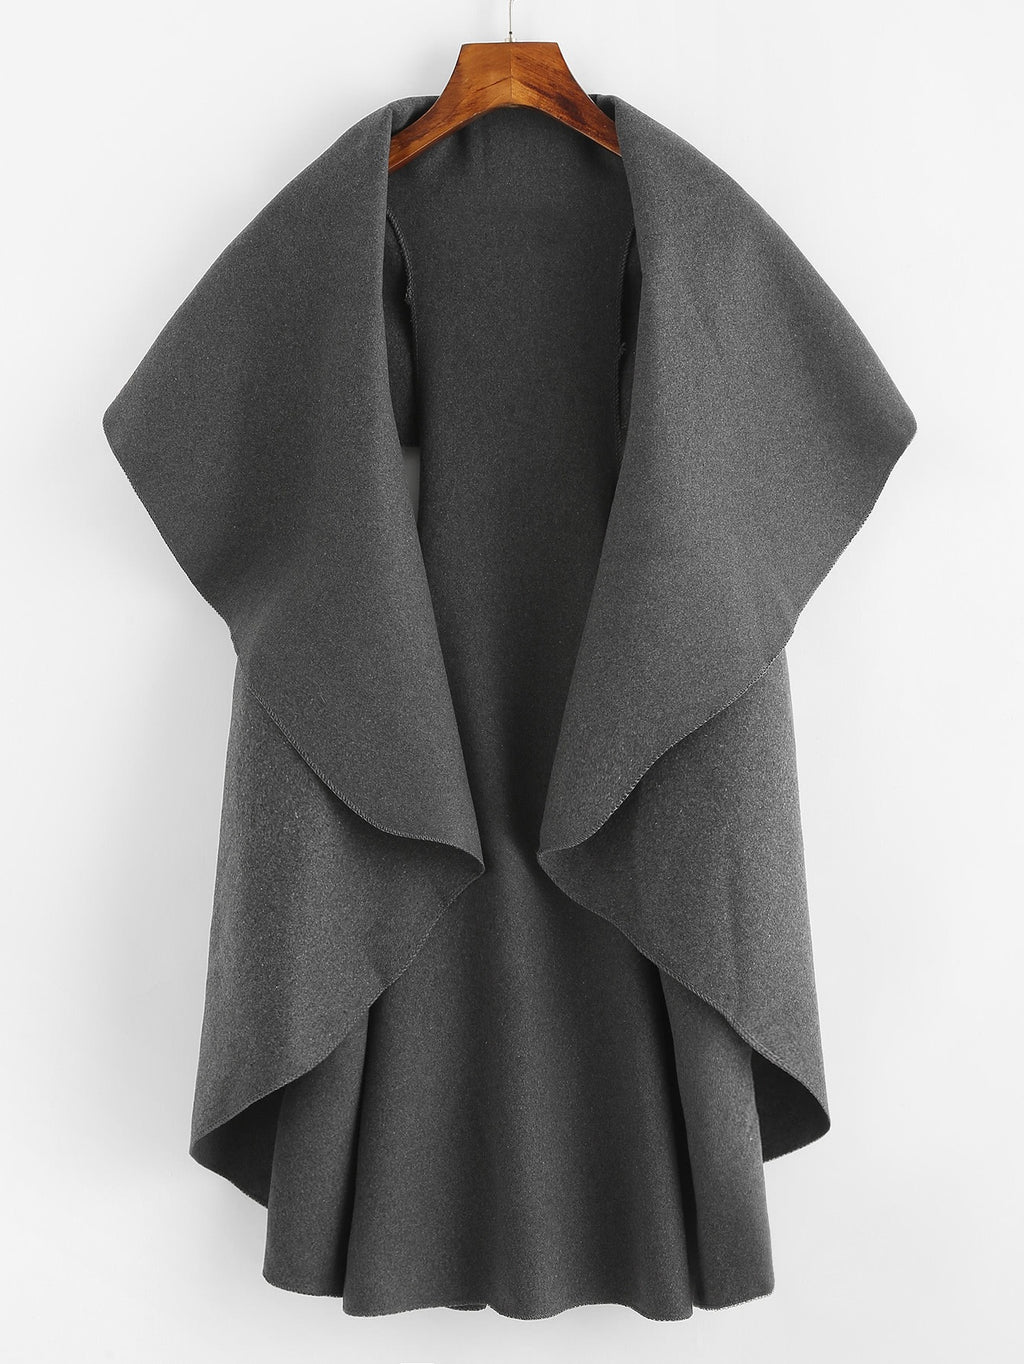 Hannah Charcoal Sleeveless Coat